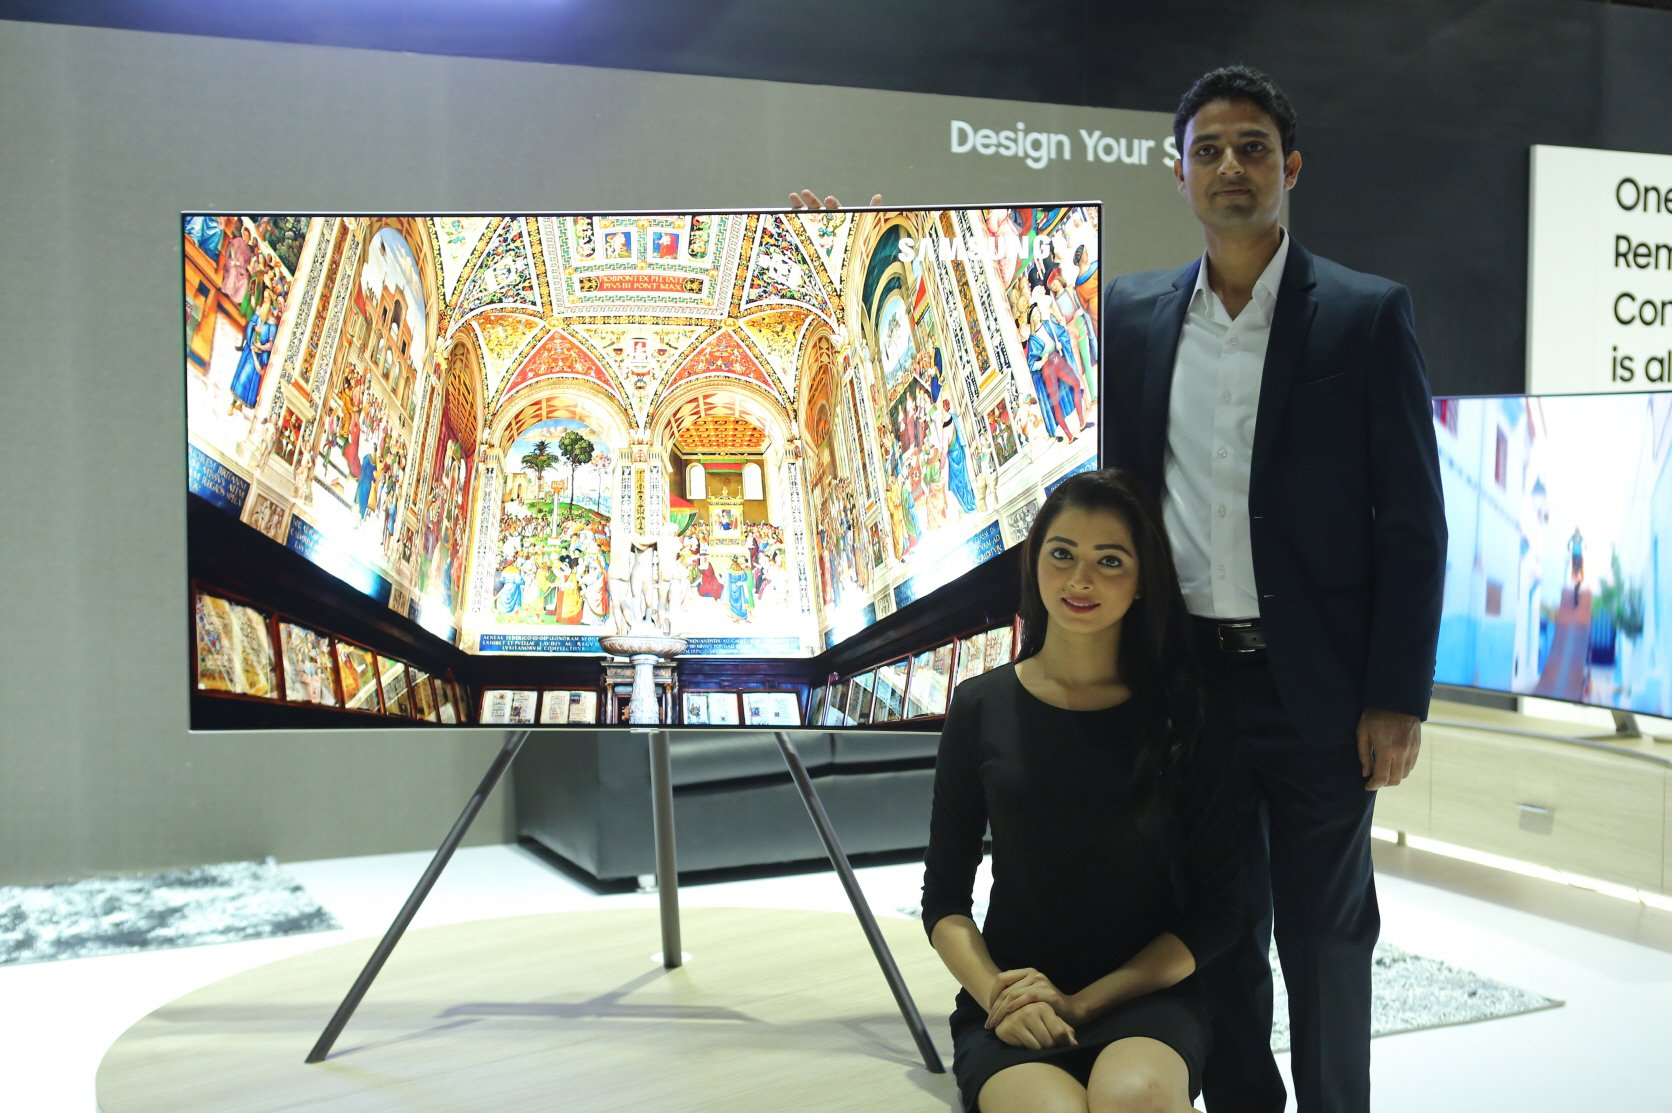 Samsung launches QLED TVs in India, offers a free Galaxy S8+